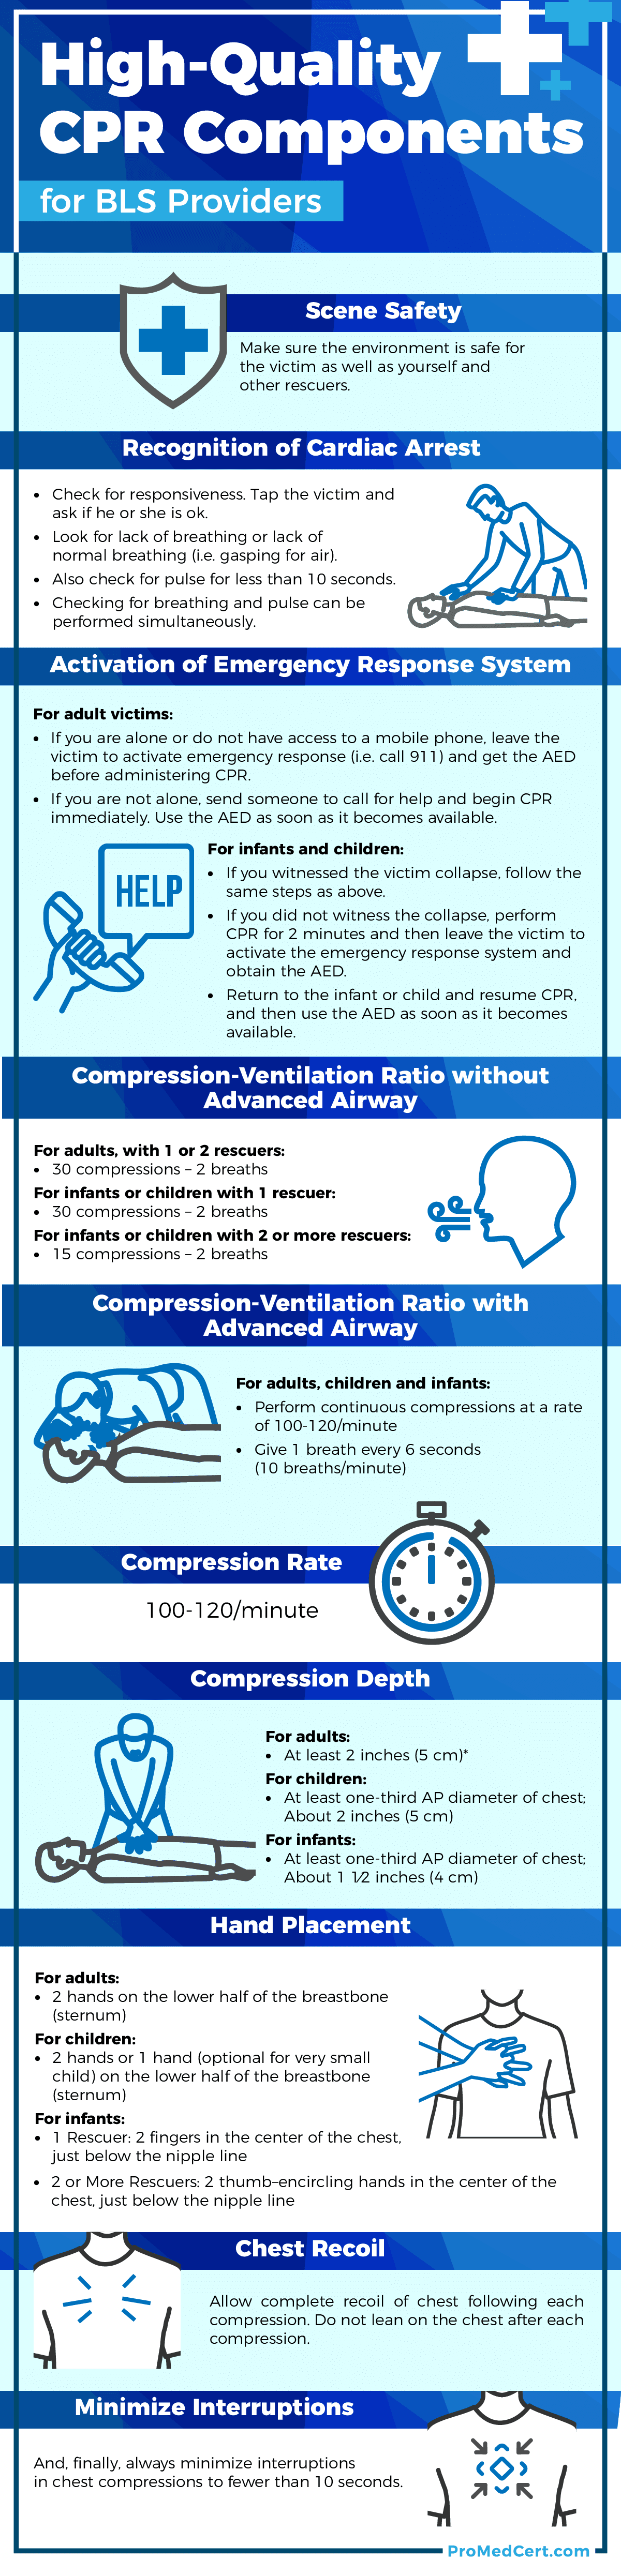 Components-Of-High-Quality-CPR-Infographic-ProMedCert.com